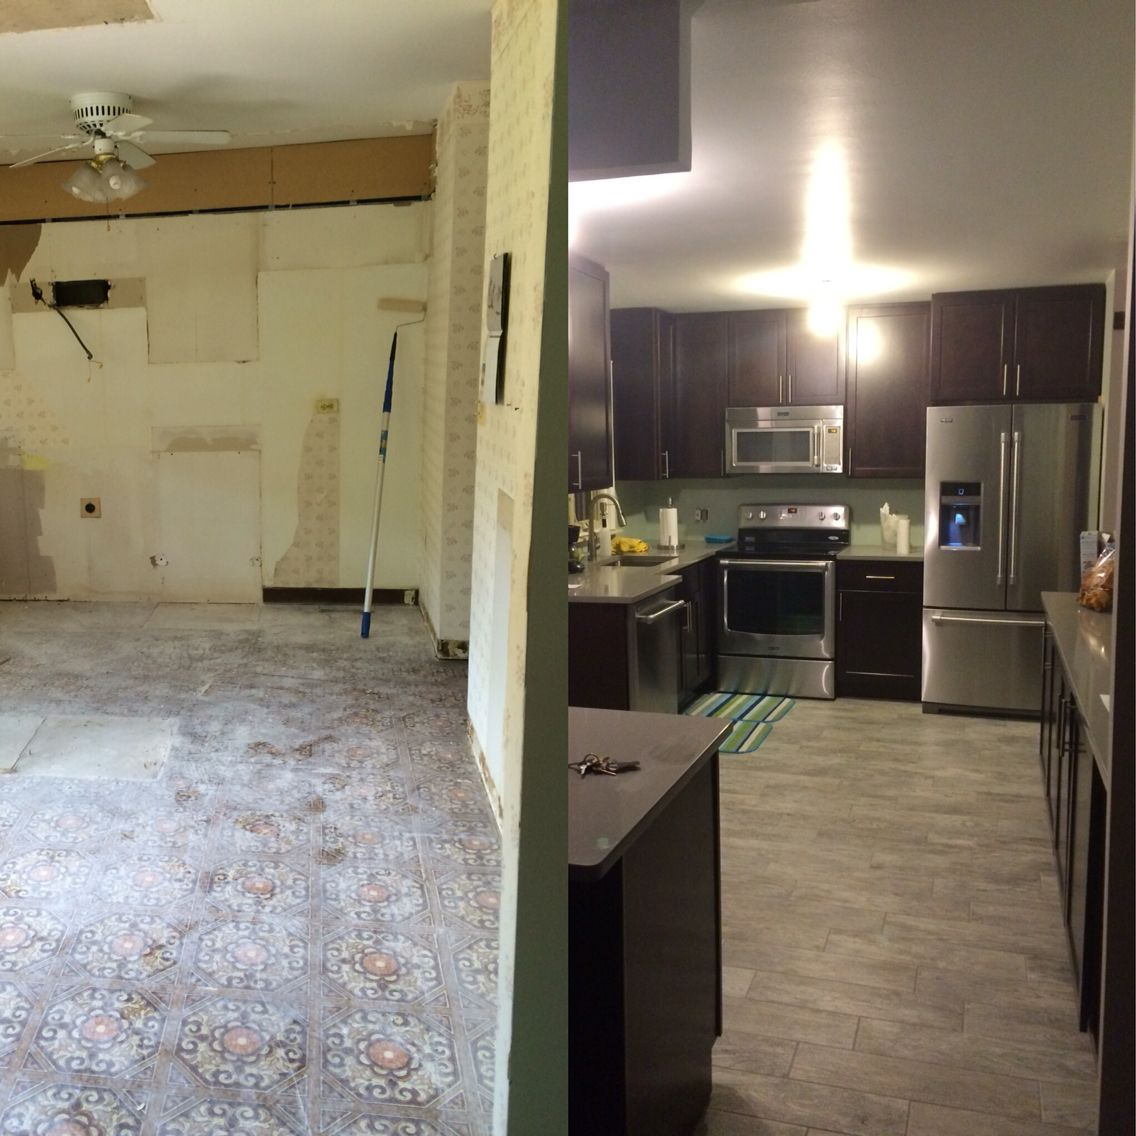 New Kitchen Before And After: My New Kitchen Before And After